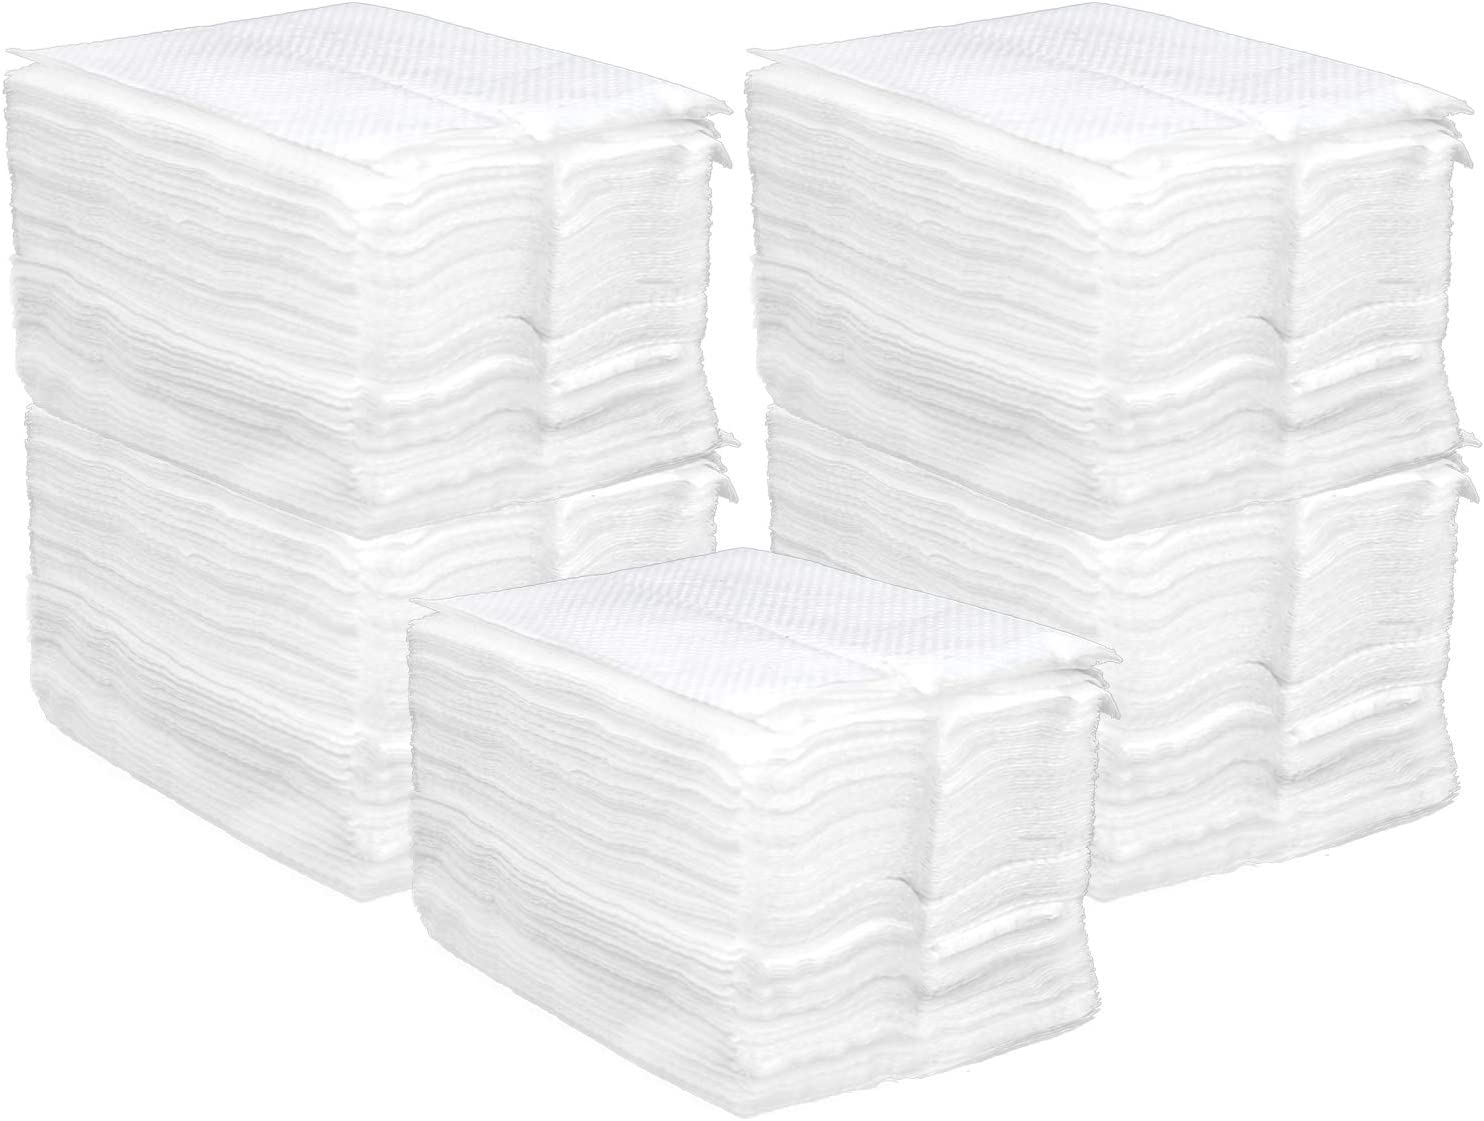 com-four/® 500x Paper Napkins as a Refill Pack for Napkin dispensers 05 Pieces - Napkin Refill Pack